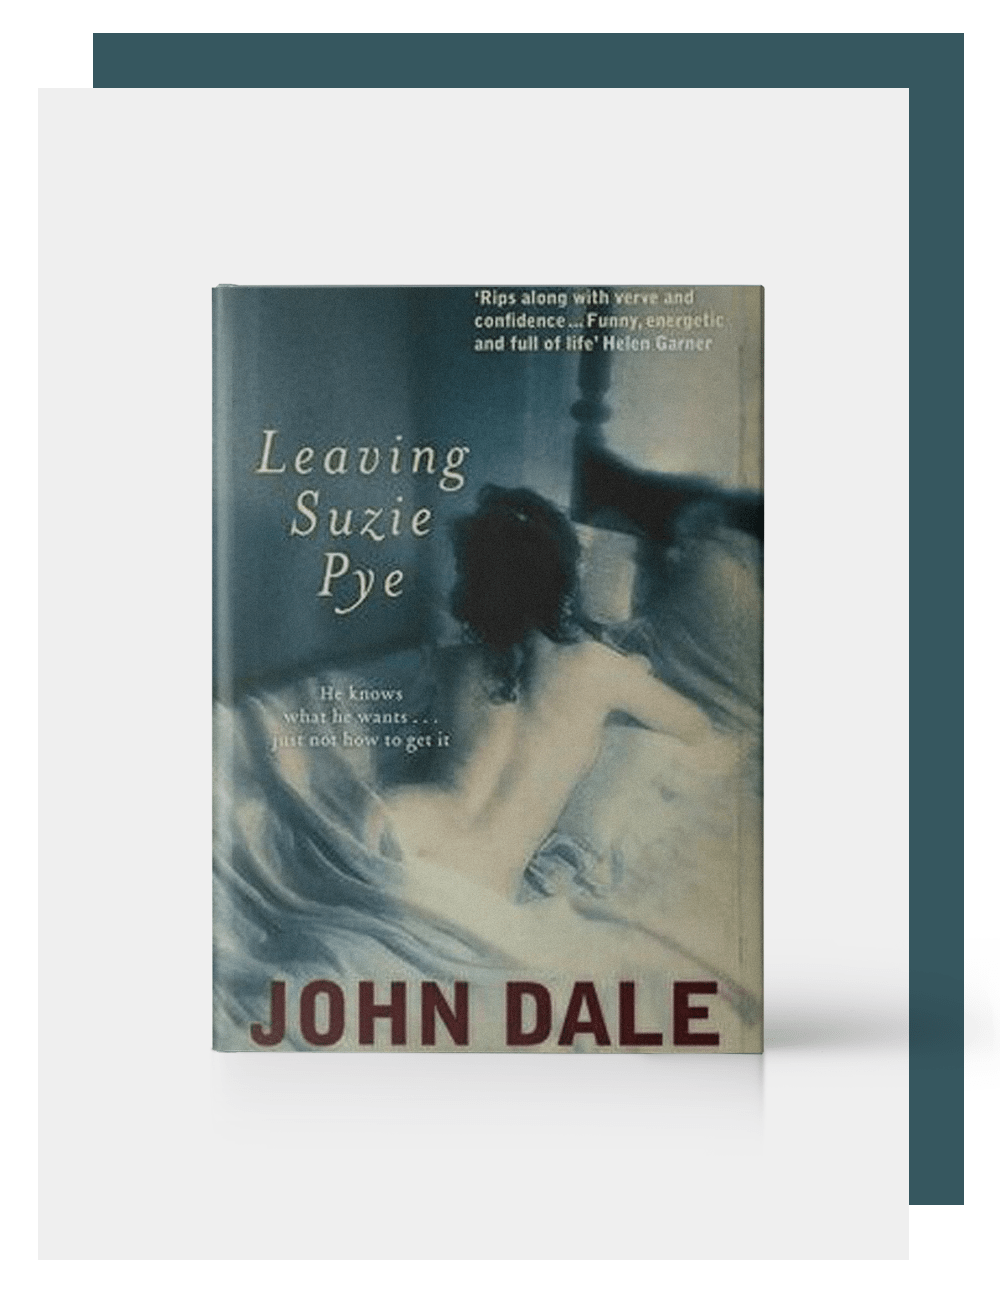 John Dale, Author, Leaving Suzi Pye